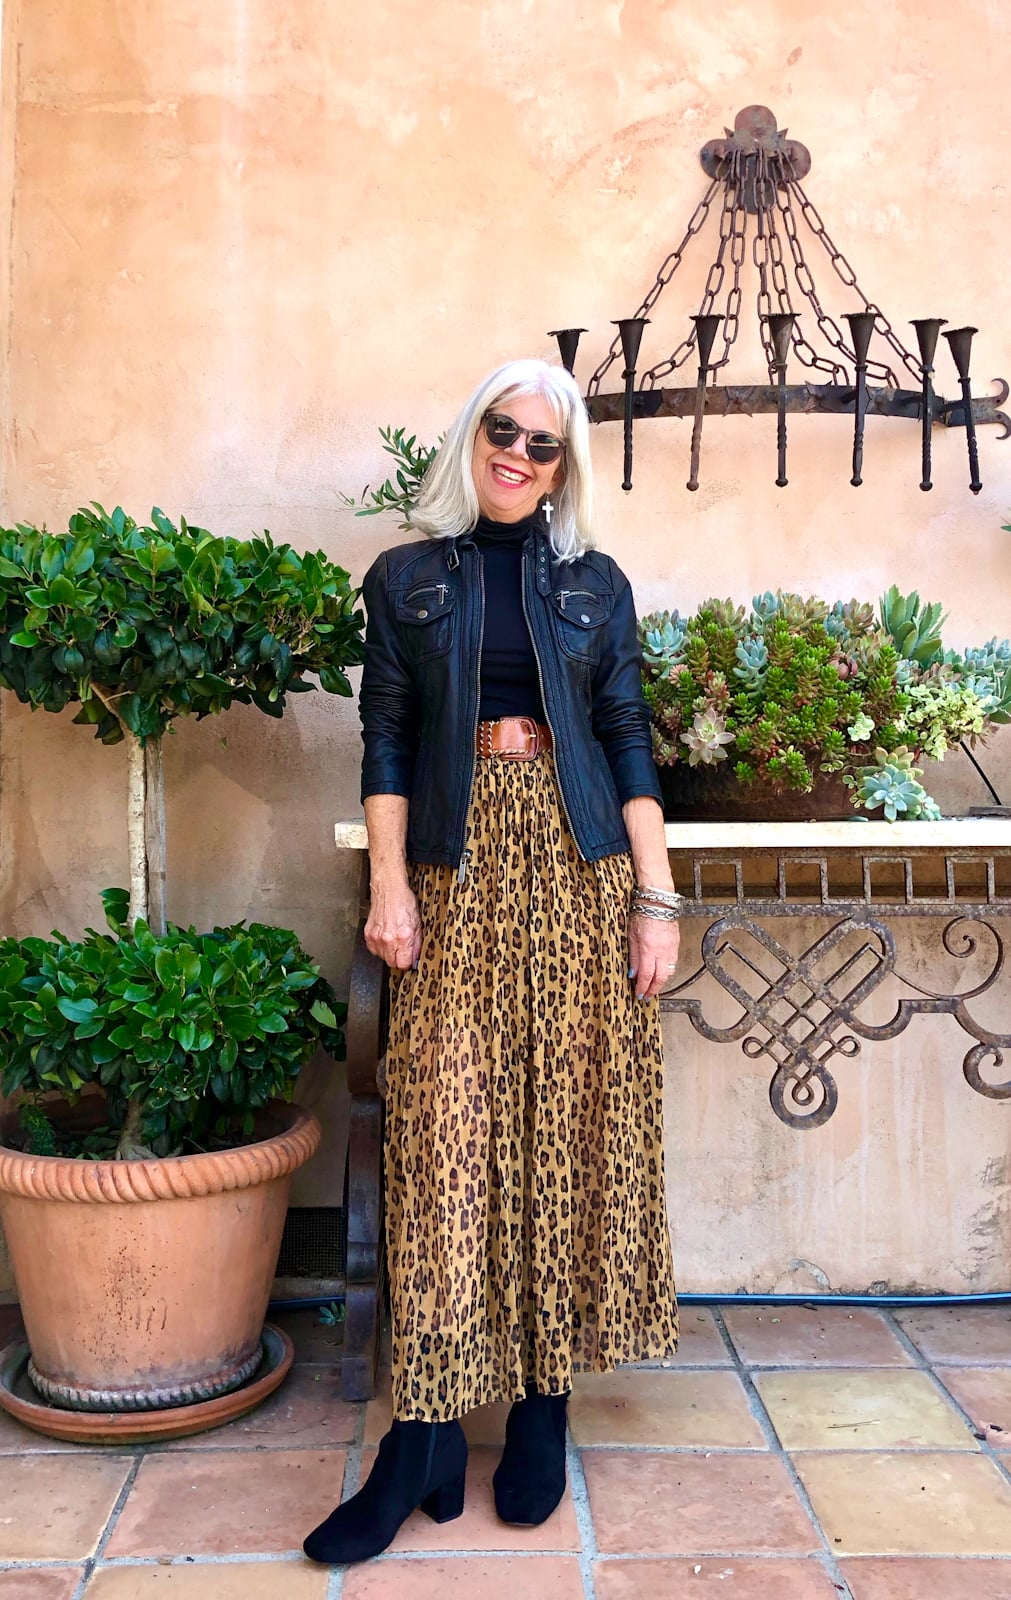 cindy hattersley in free people leopard skirt and turtleneck